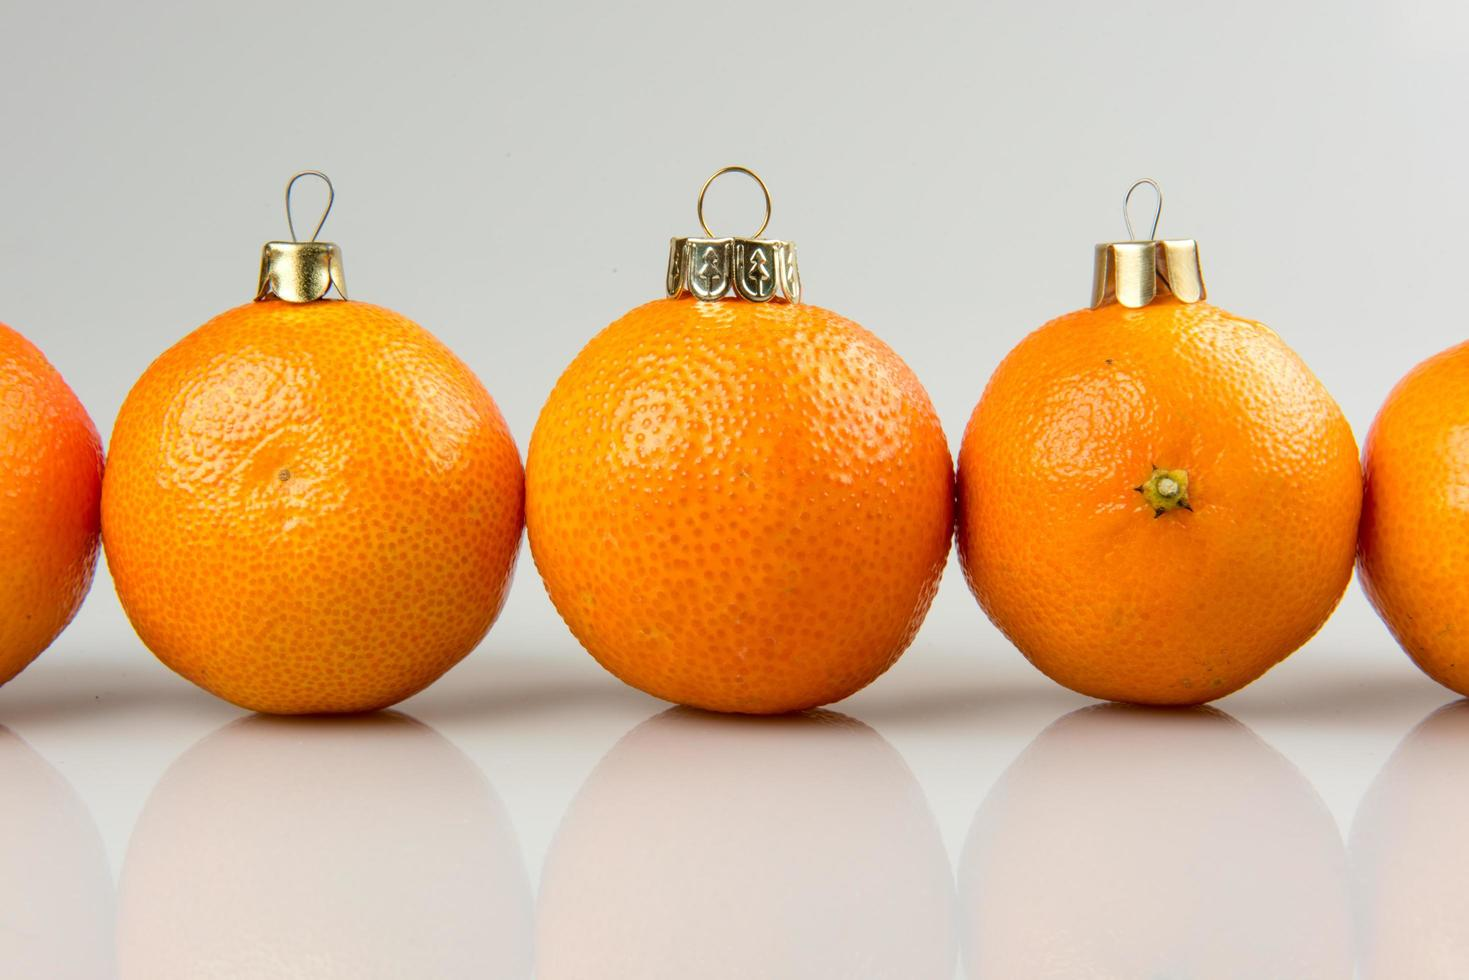 Close-up of tangerine baubles photo